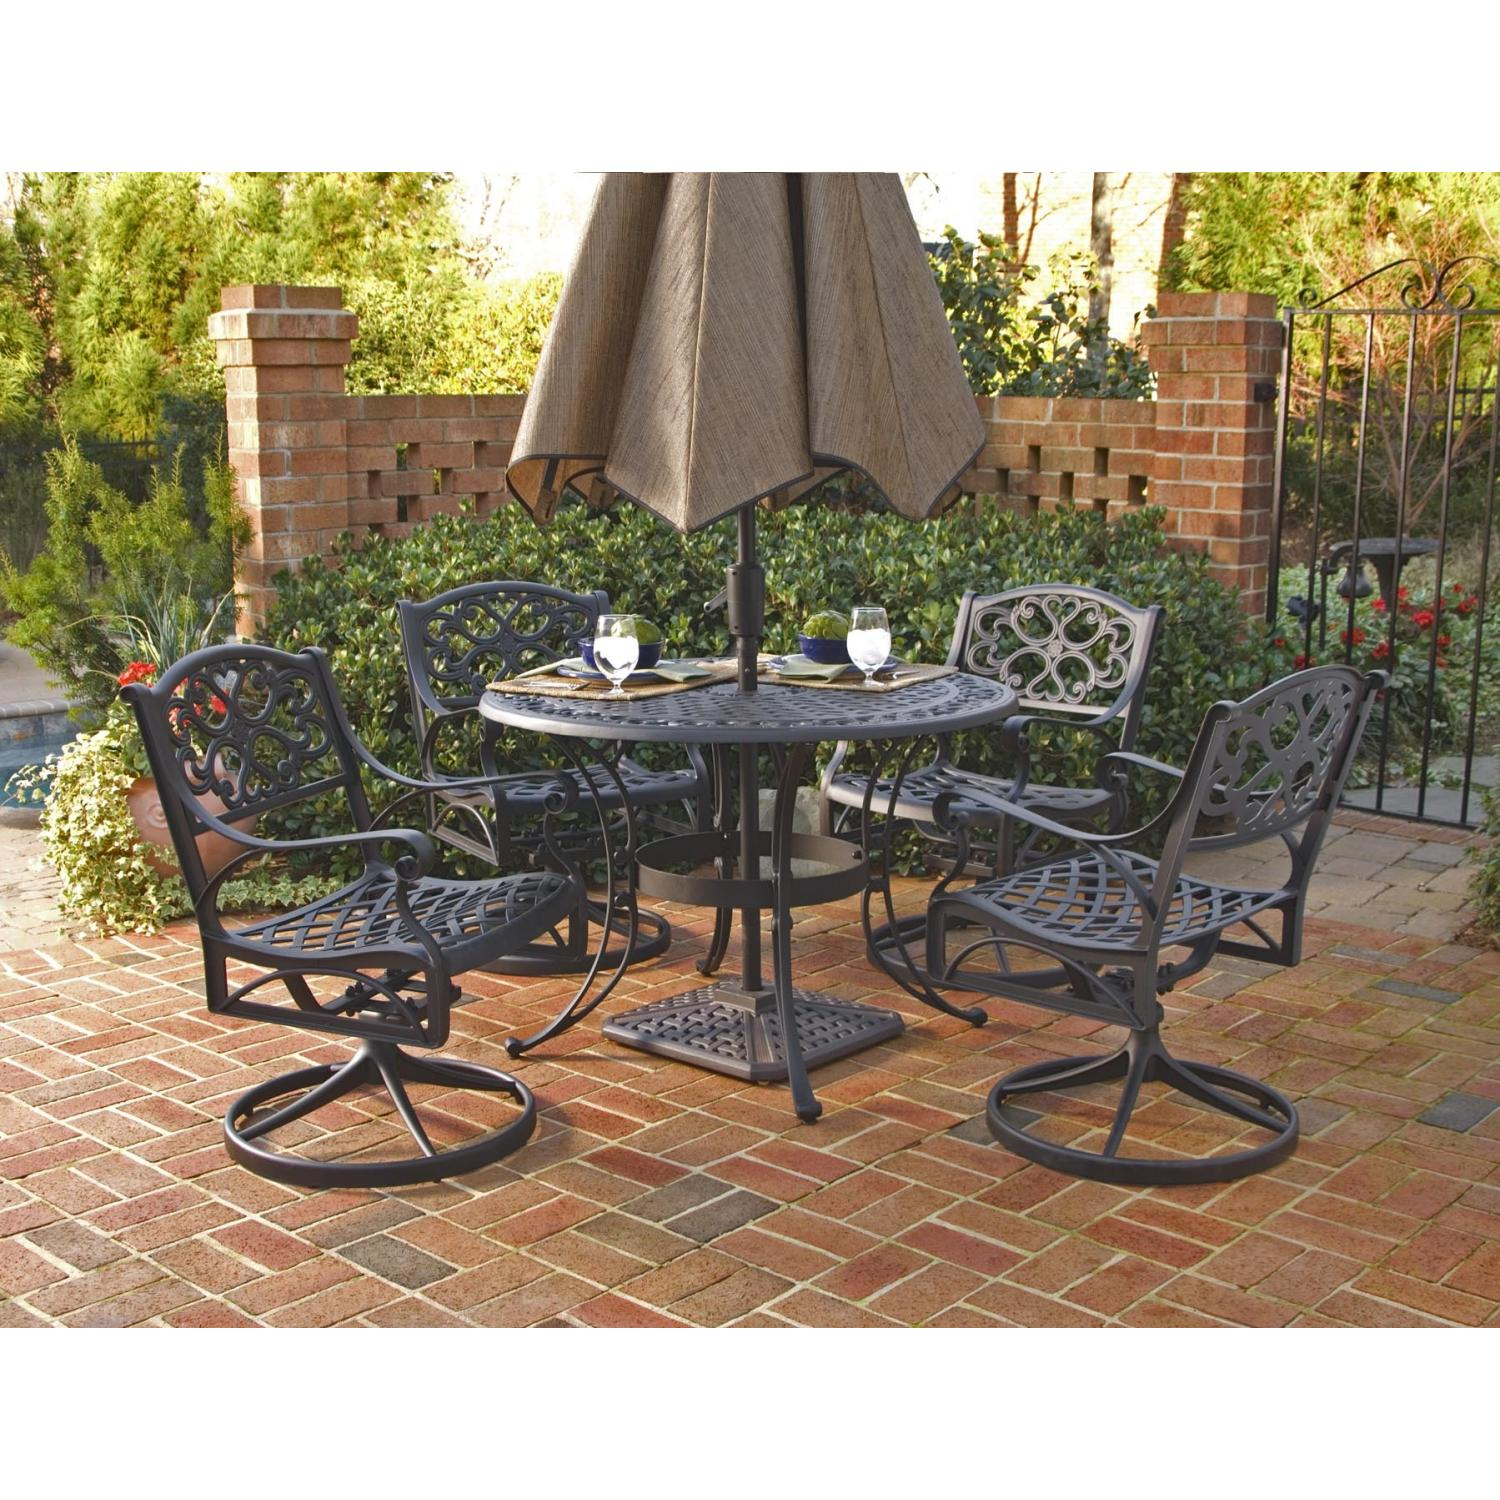 Darlee Florence 4 Person Cast Aluminum Patio Dining Set